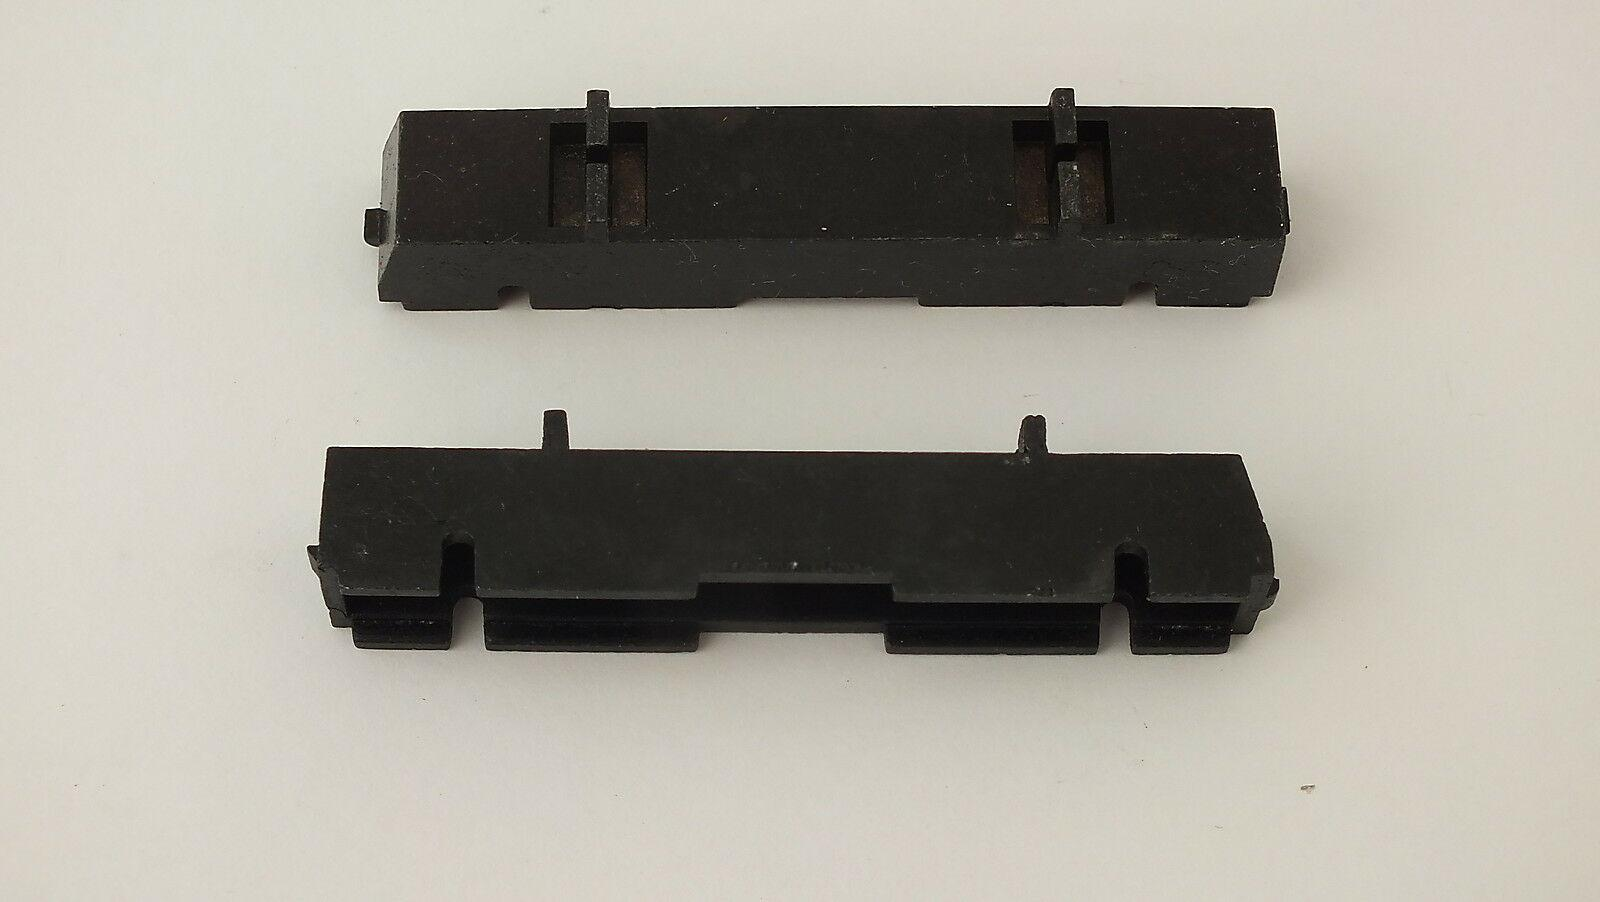 S4543   HORNBY TRIANG CHASSIS NON POWERED BOGIE METAL X 2      N2B